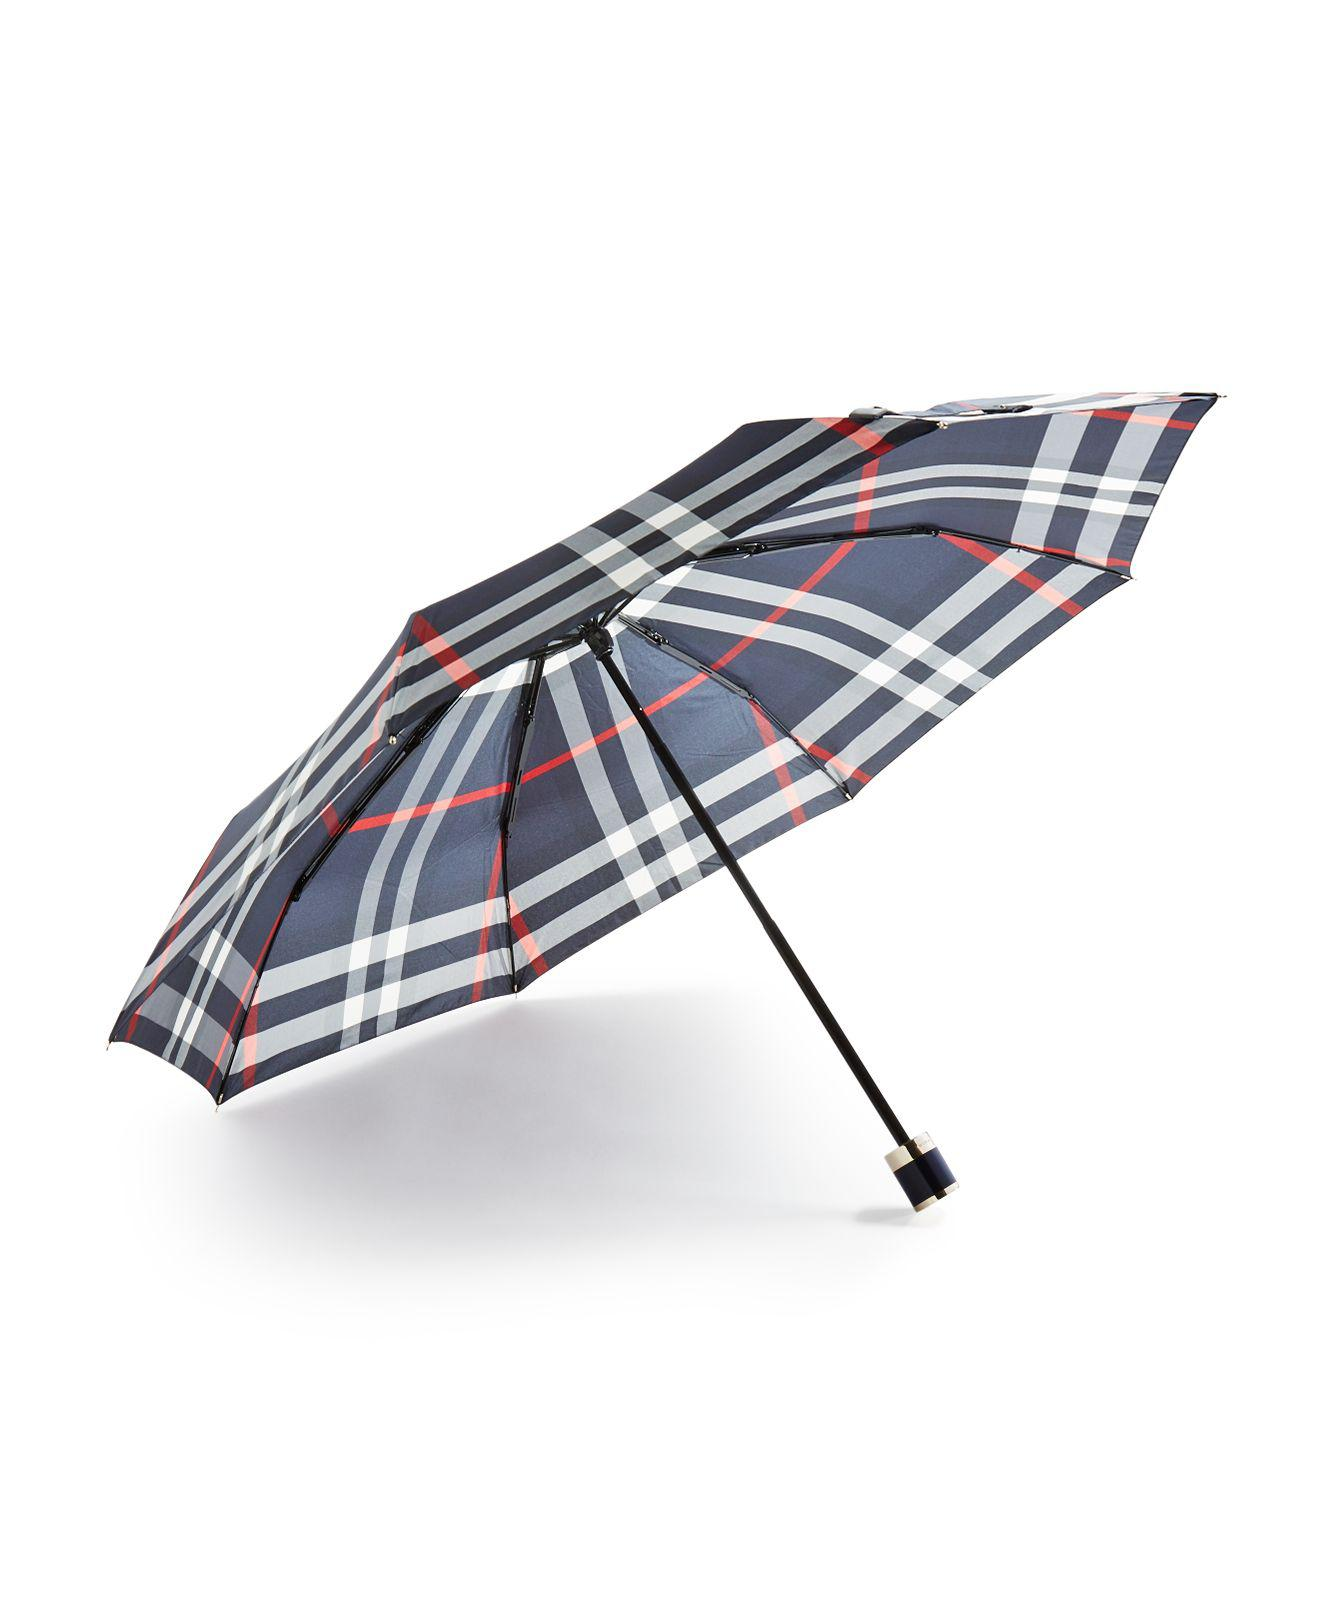 a5d7876a4d05 Lyst - Burberry Trafalgar Packable Check Umbrella in Blue